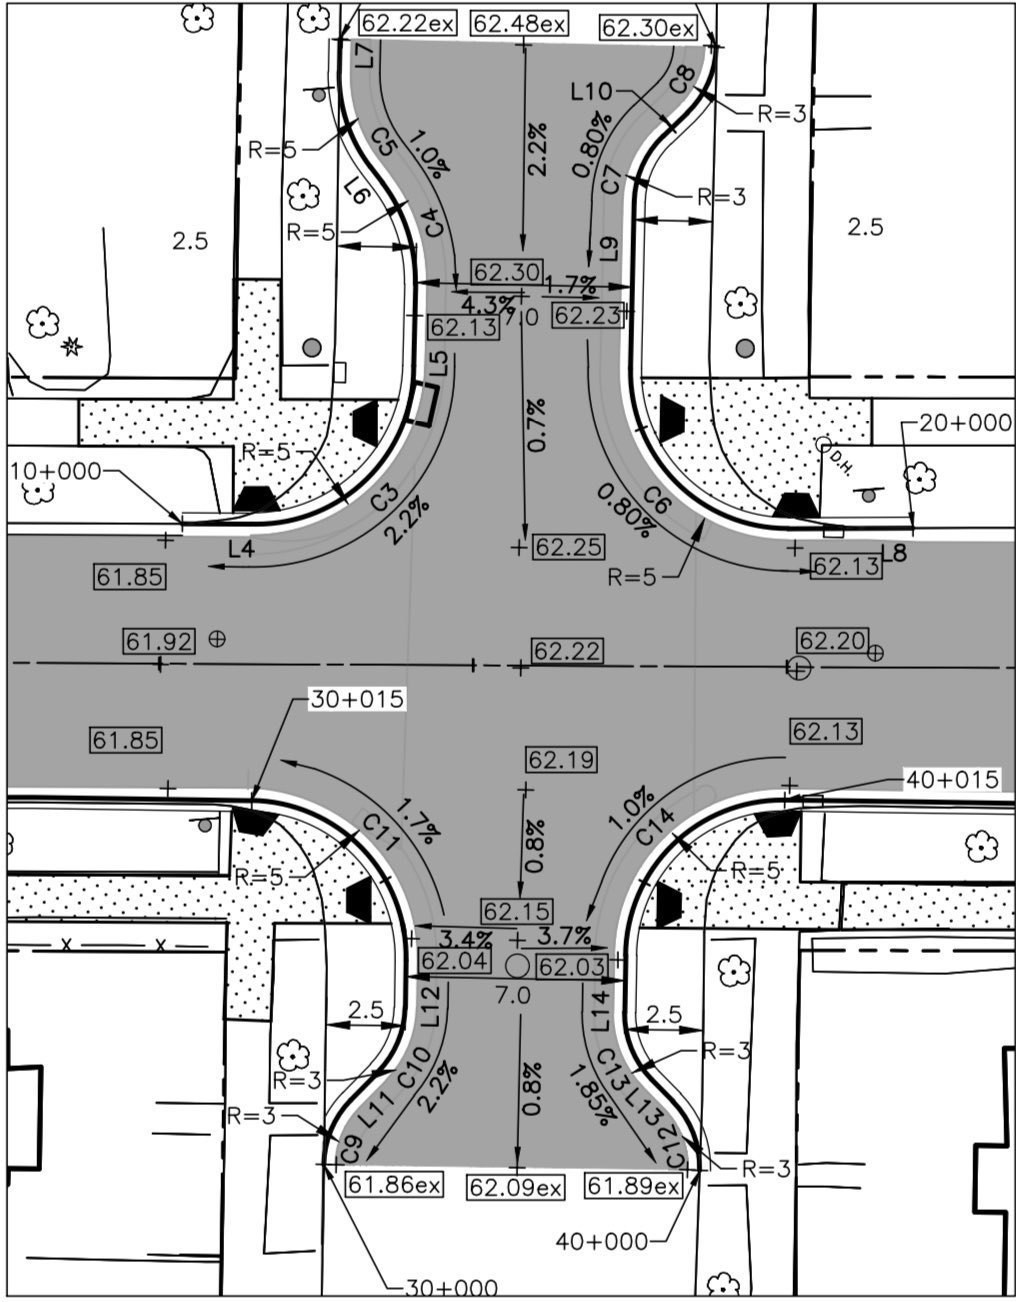 Closeup engineering diagrams showing new curb bumpouts